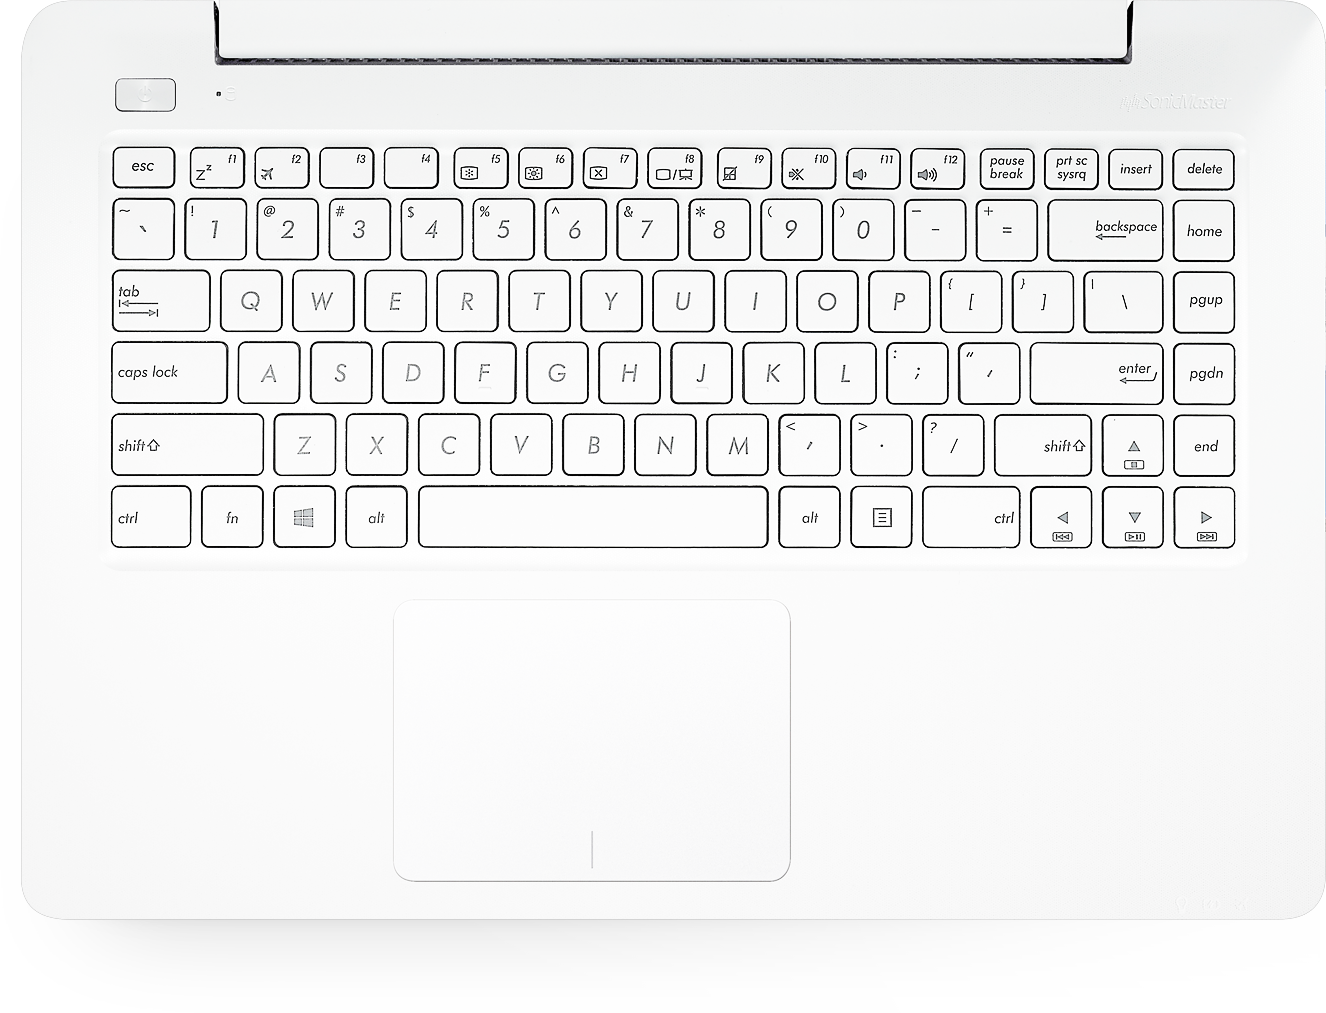 X556ua Laptops Asus Global Laptop Charger Circuit Diagram 10 Battery Schematic The Larger 106mm X 74mm Touchpads Found On Vivobook Series Have A Palm Rejection Feature Which Differentiates Between Actual Fingertip And Contact